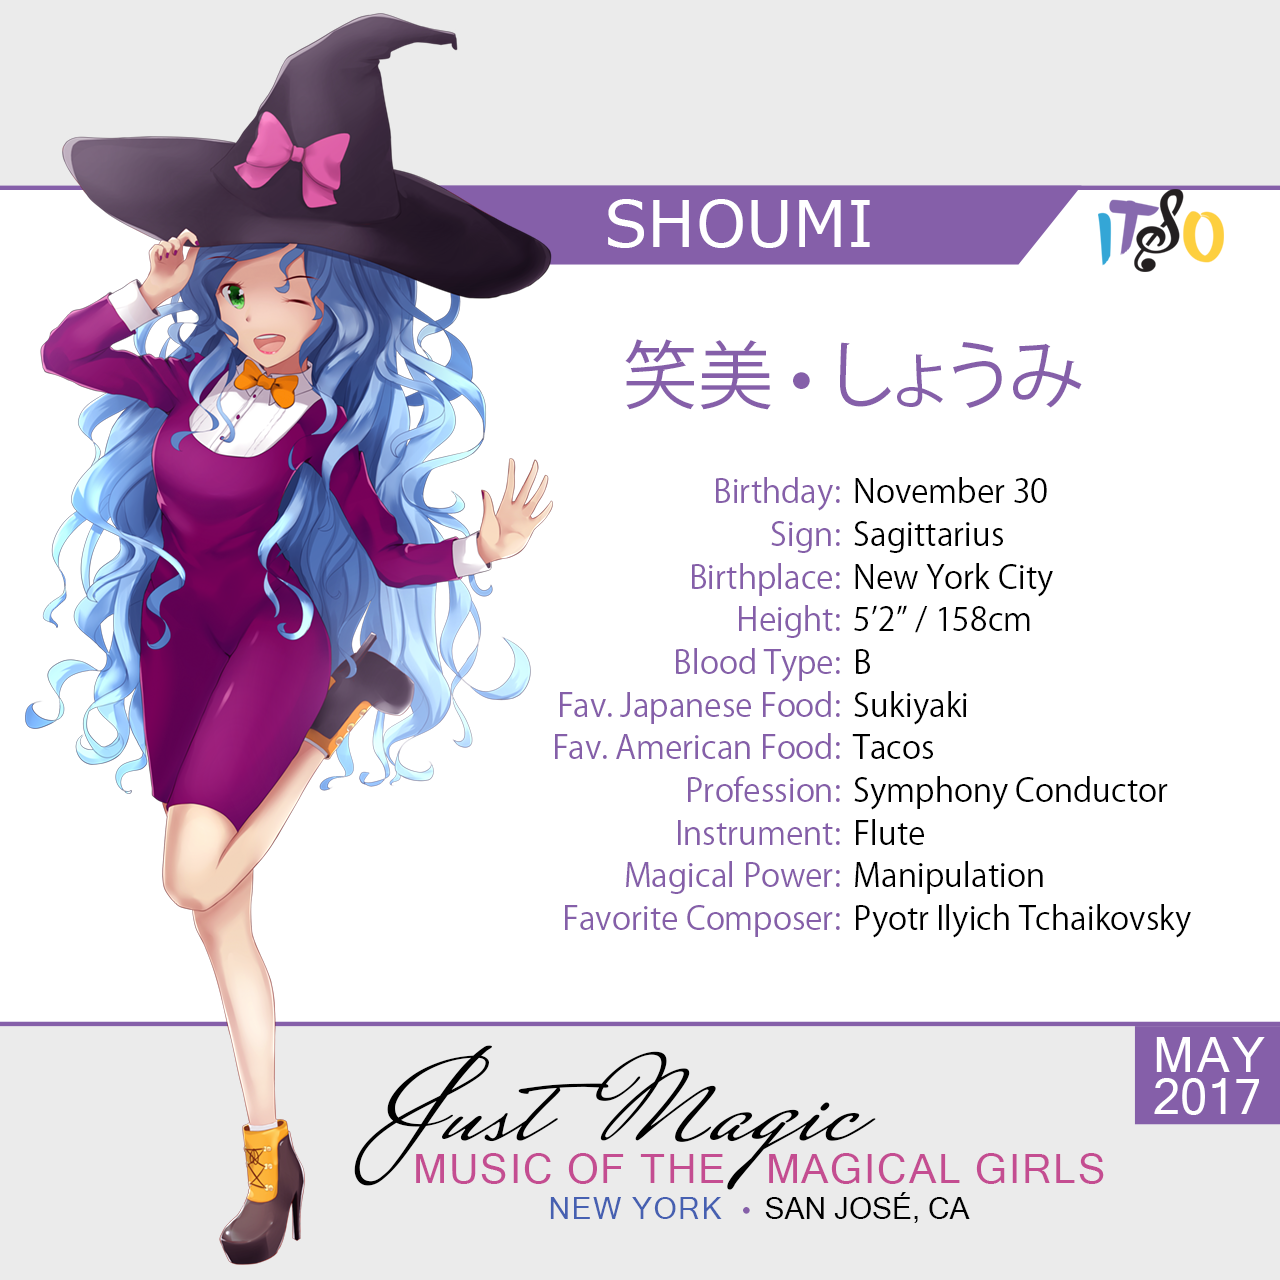 Shoumi, the Magical Conductor